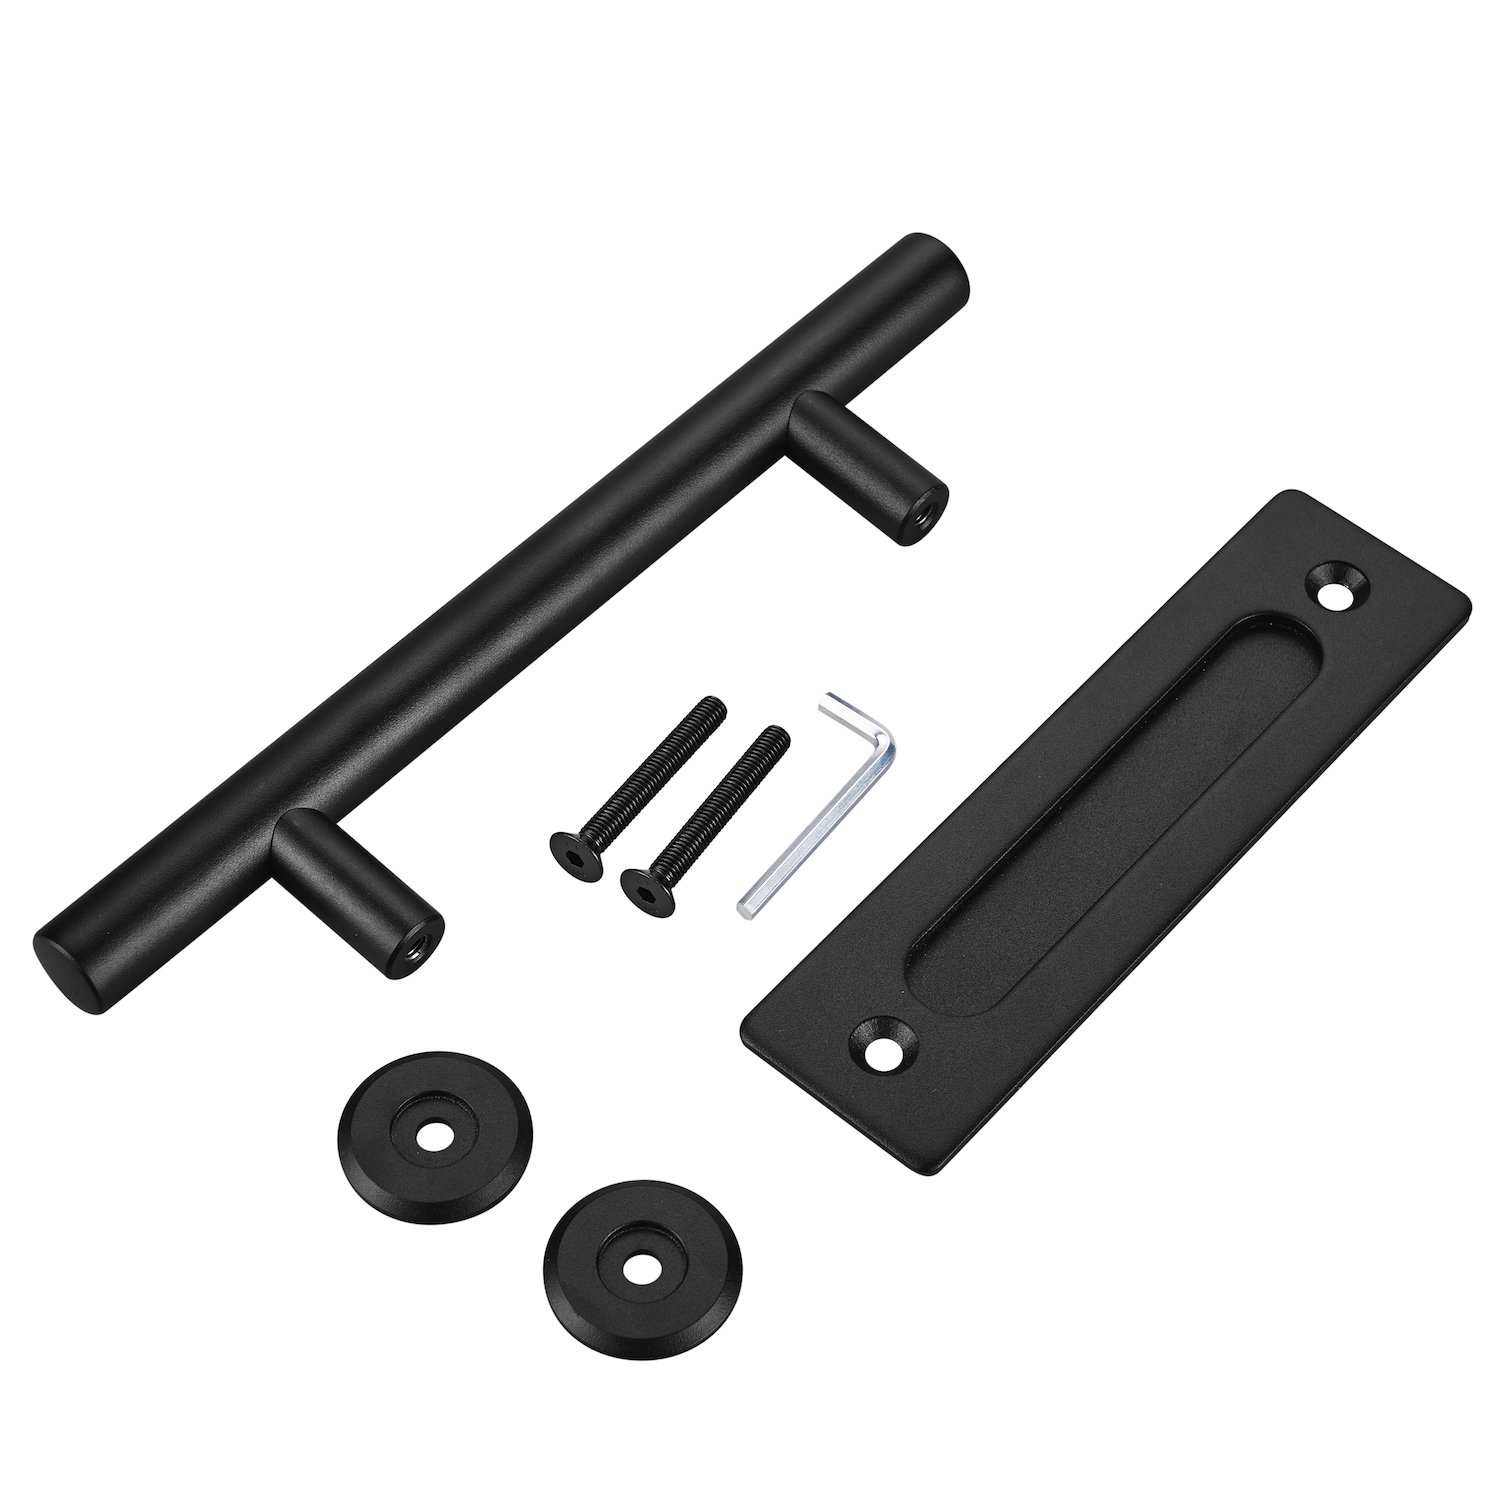 FaithLand 12'' Heavy Duty Pull and Flush Door Handle Set in Black, Sliding Barn Door Hardware Handle